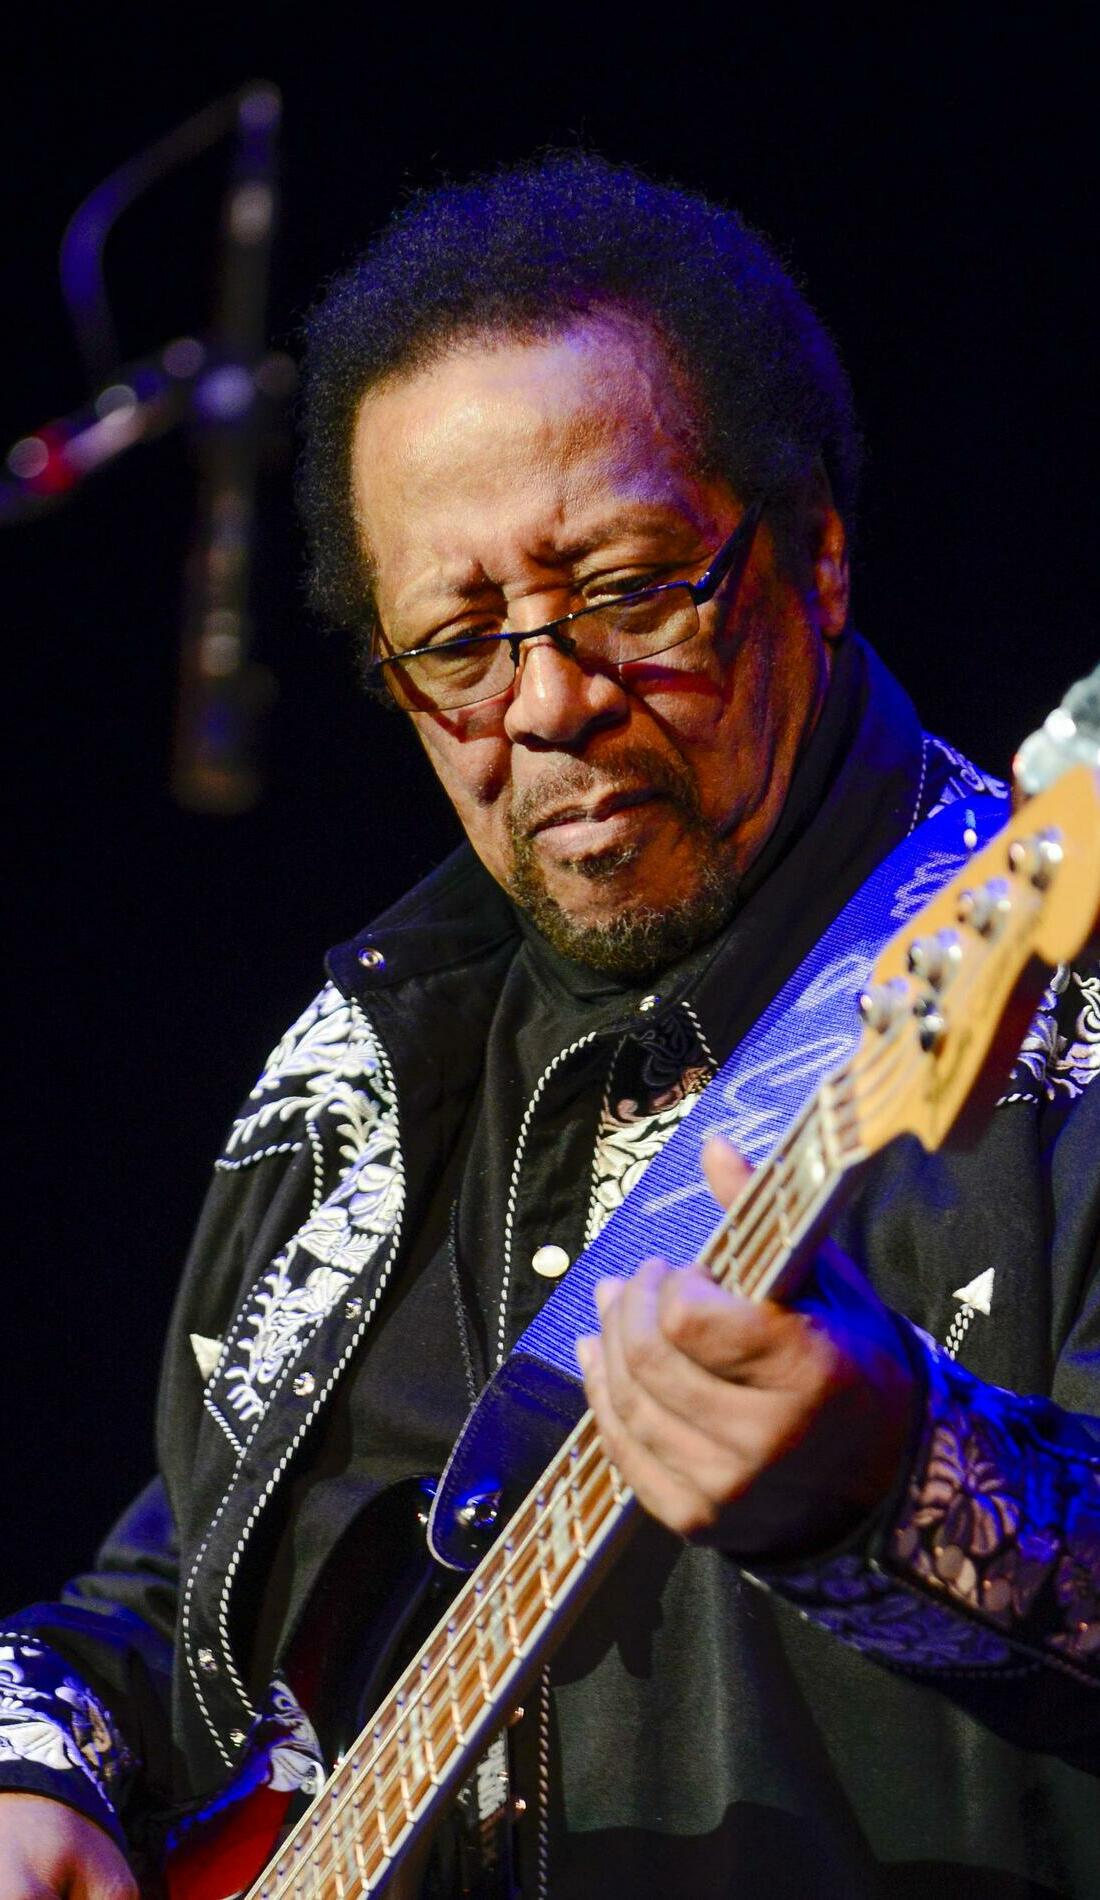 A Billy Cox live event